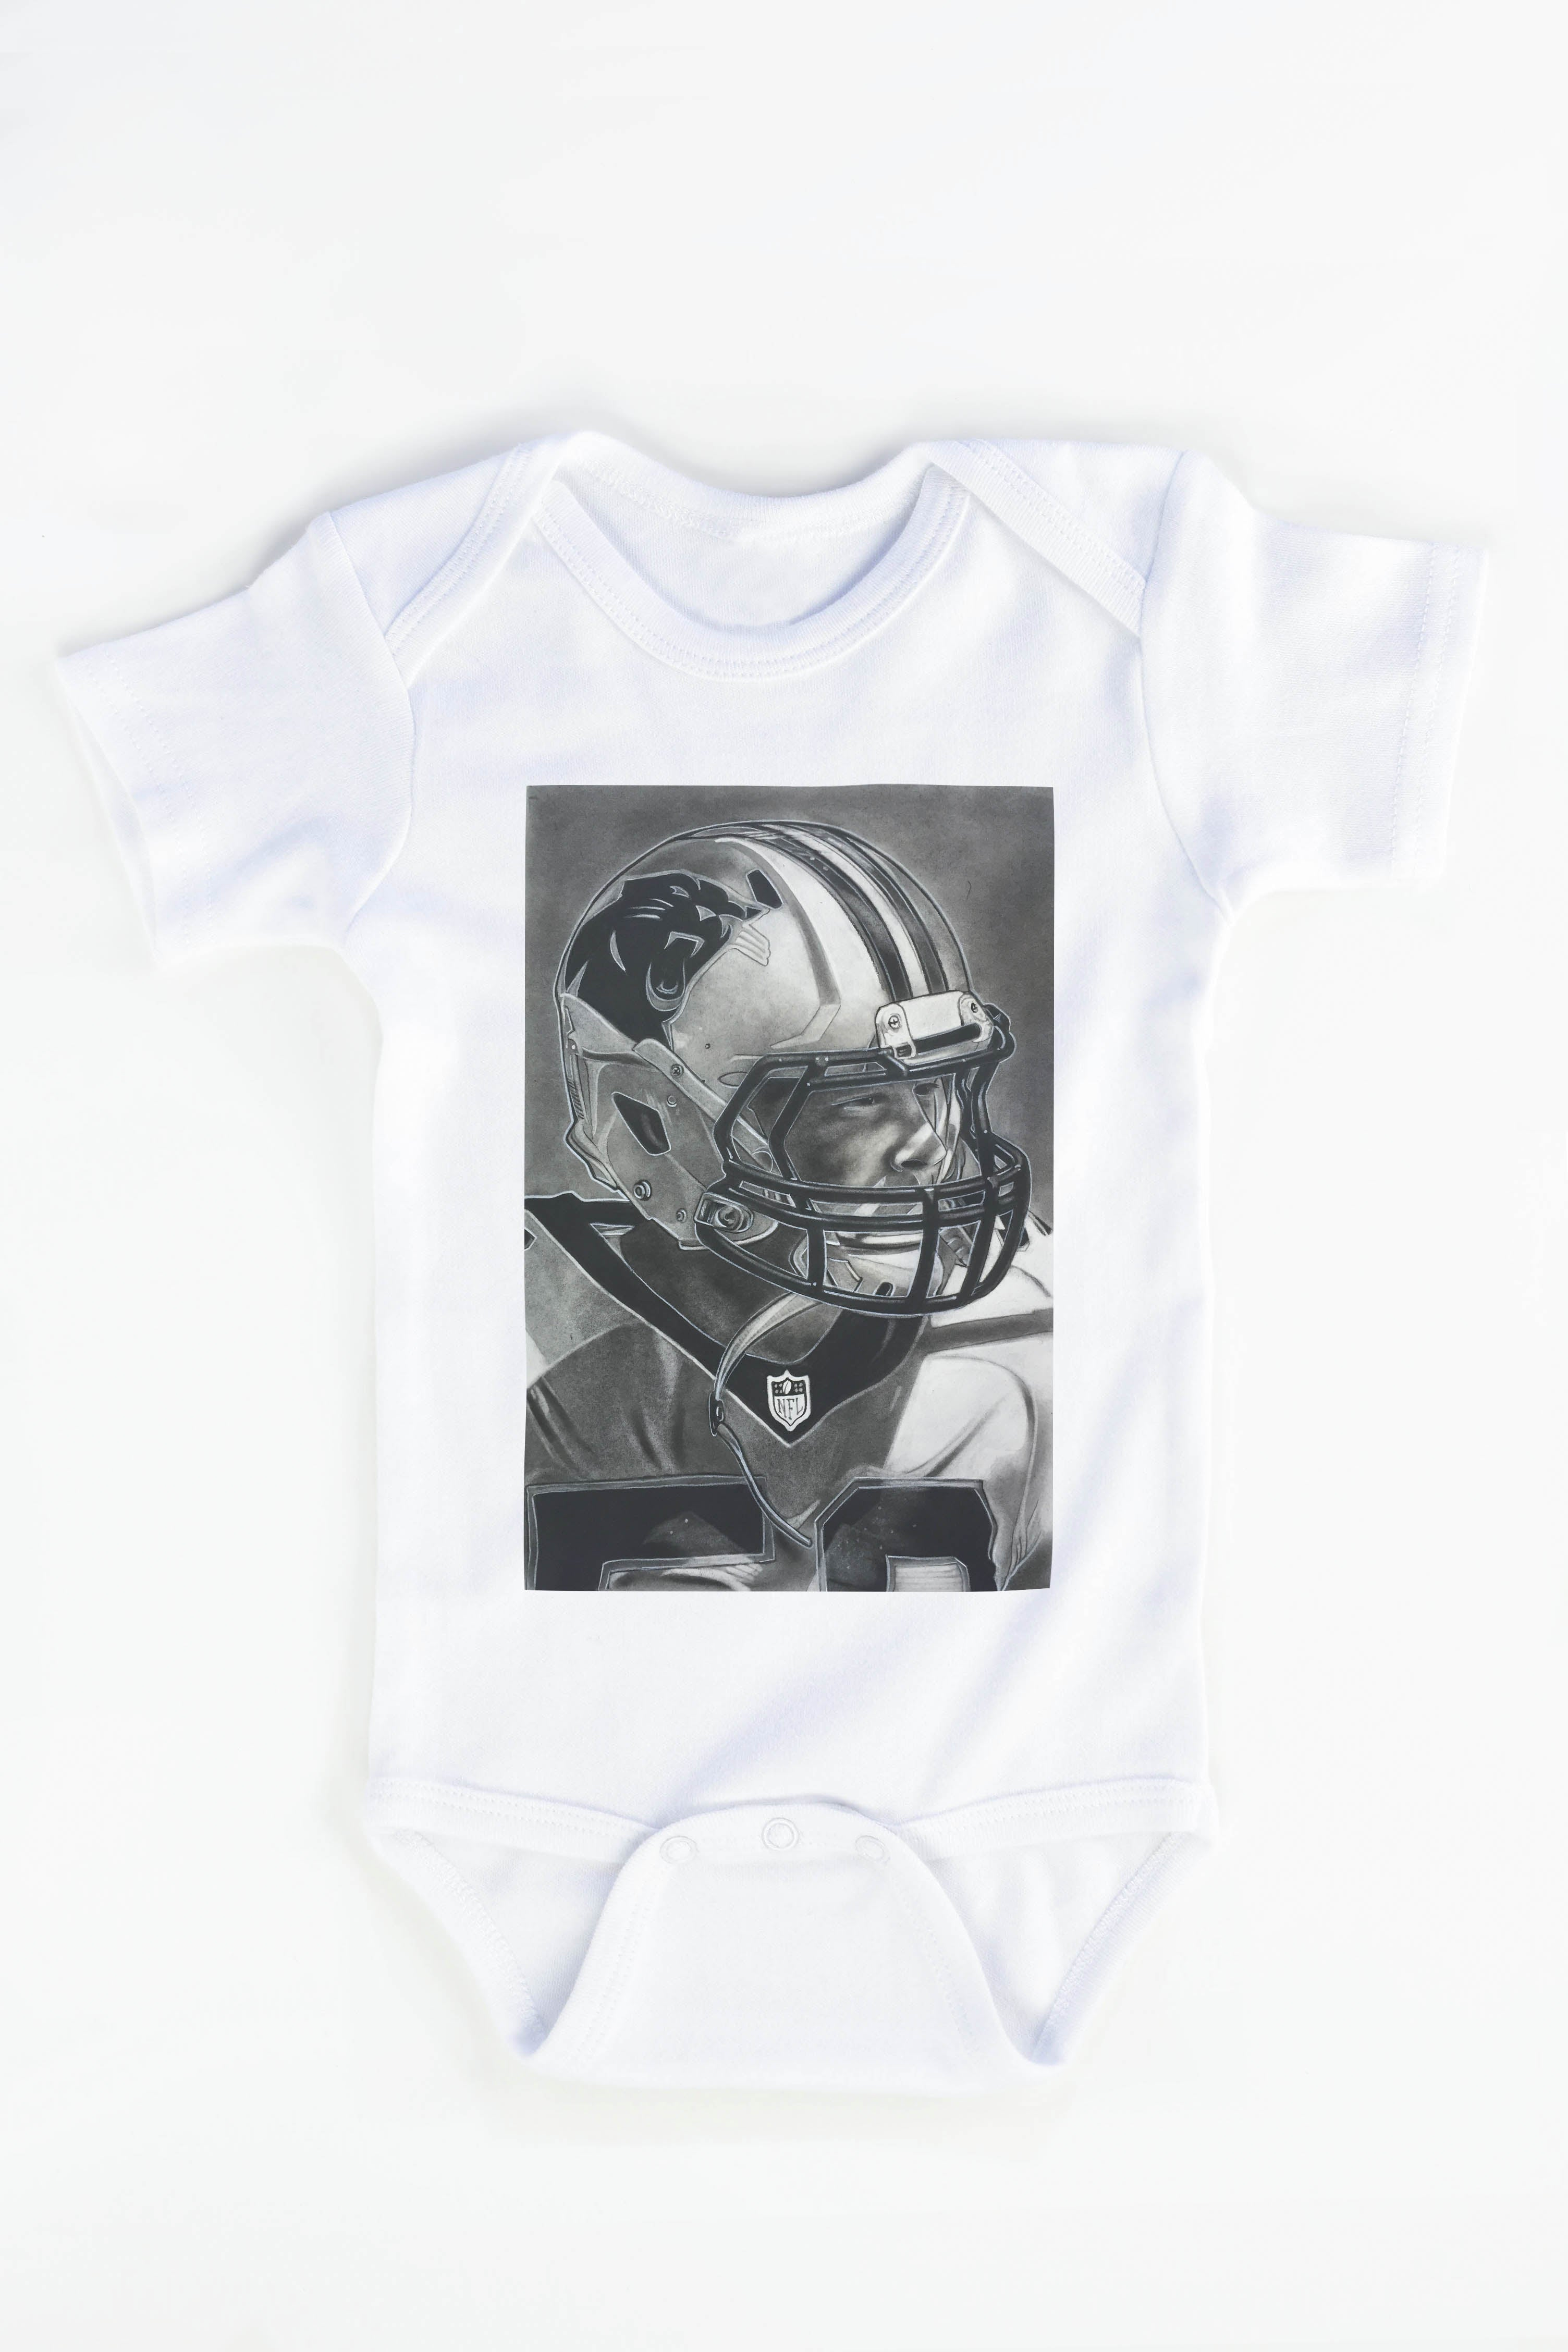 Panthers Helmet One-piece